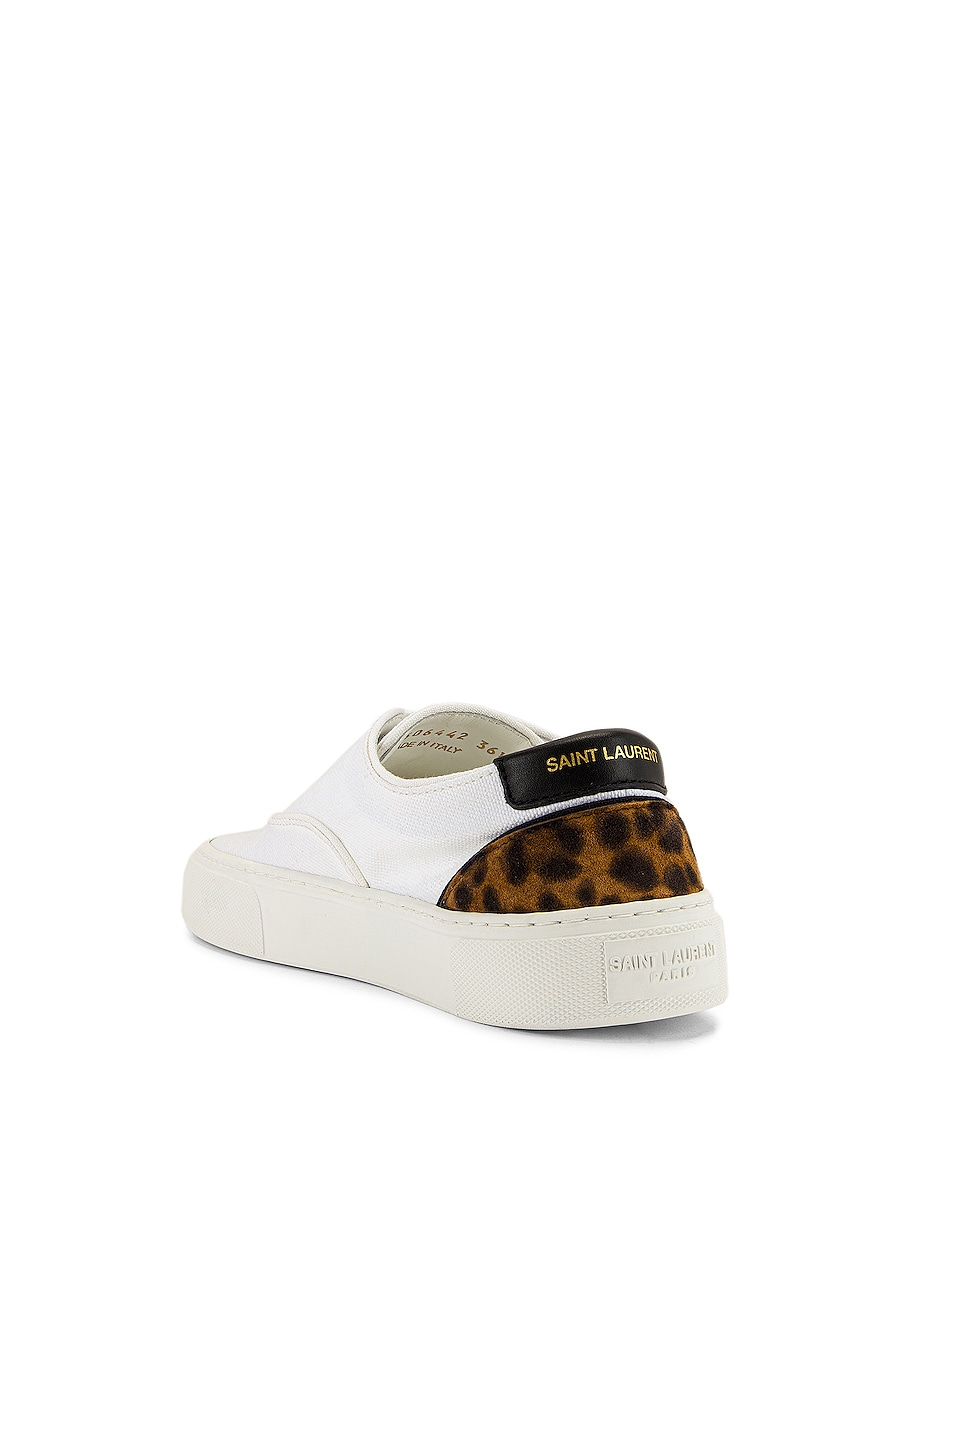 Image 3 of Saint Laurent Venice Low Top Sneakers in White & Manto Naturale